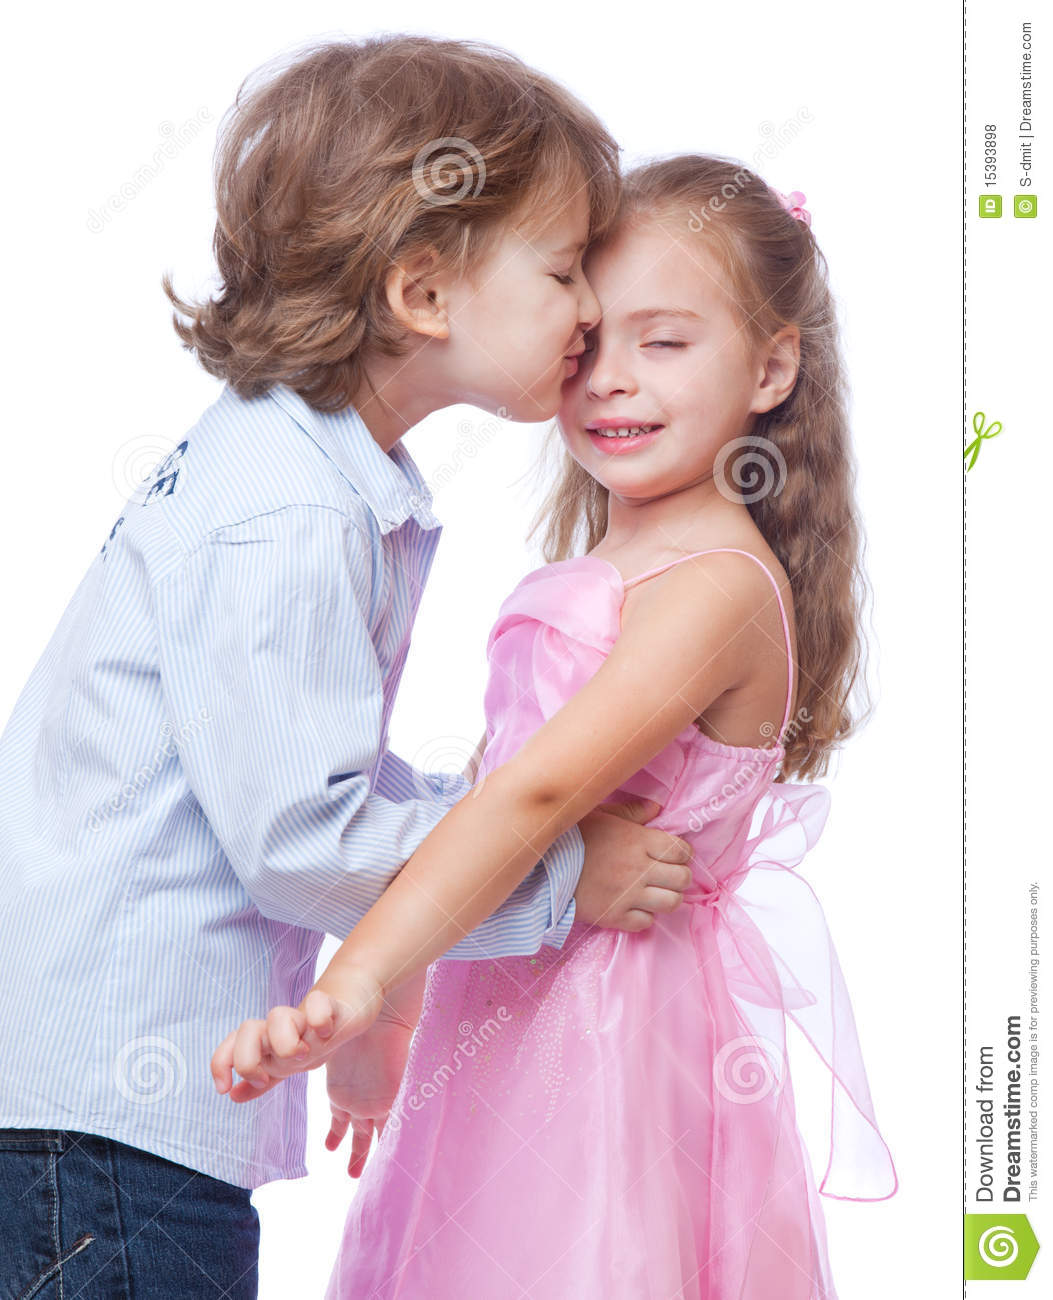 Small Girl Love Wallpaper : Little Boy And Girl Love Hd Wallpaper Wallpaper Images